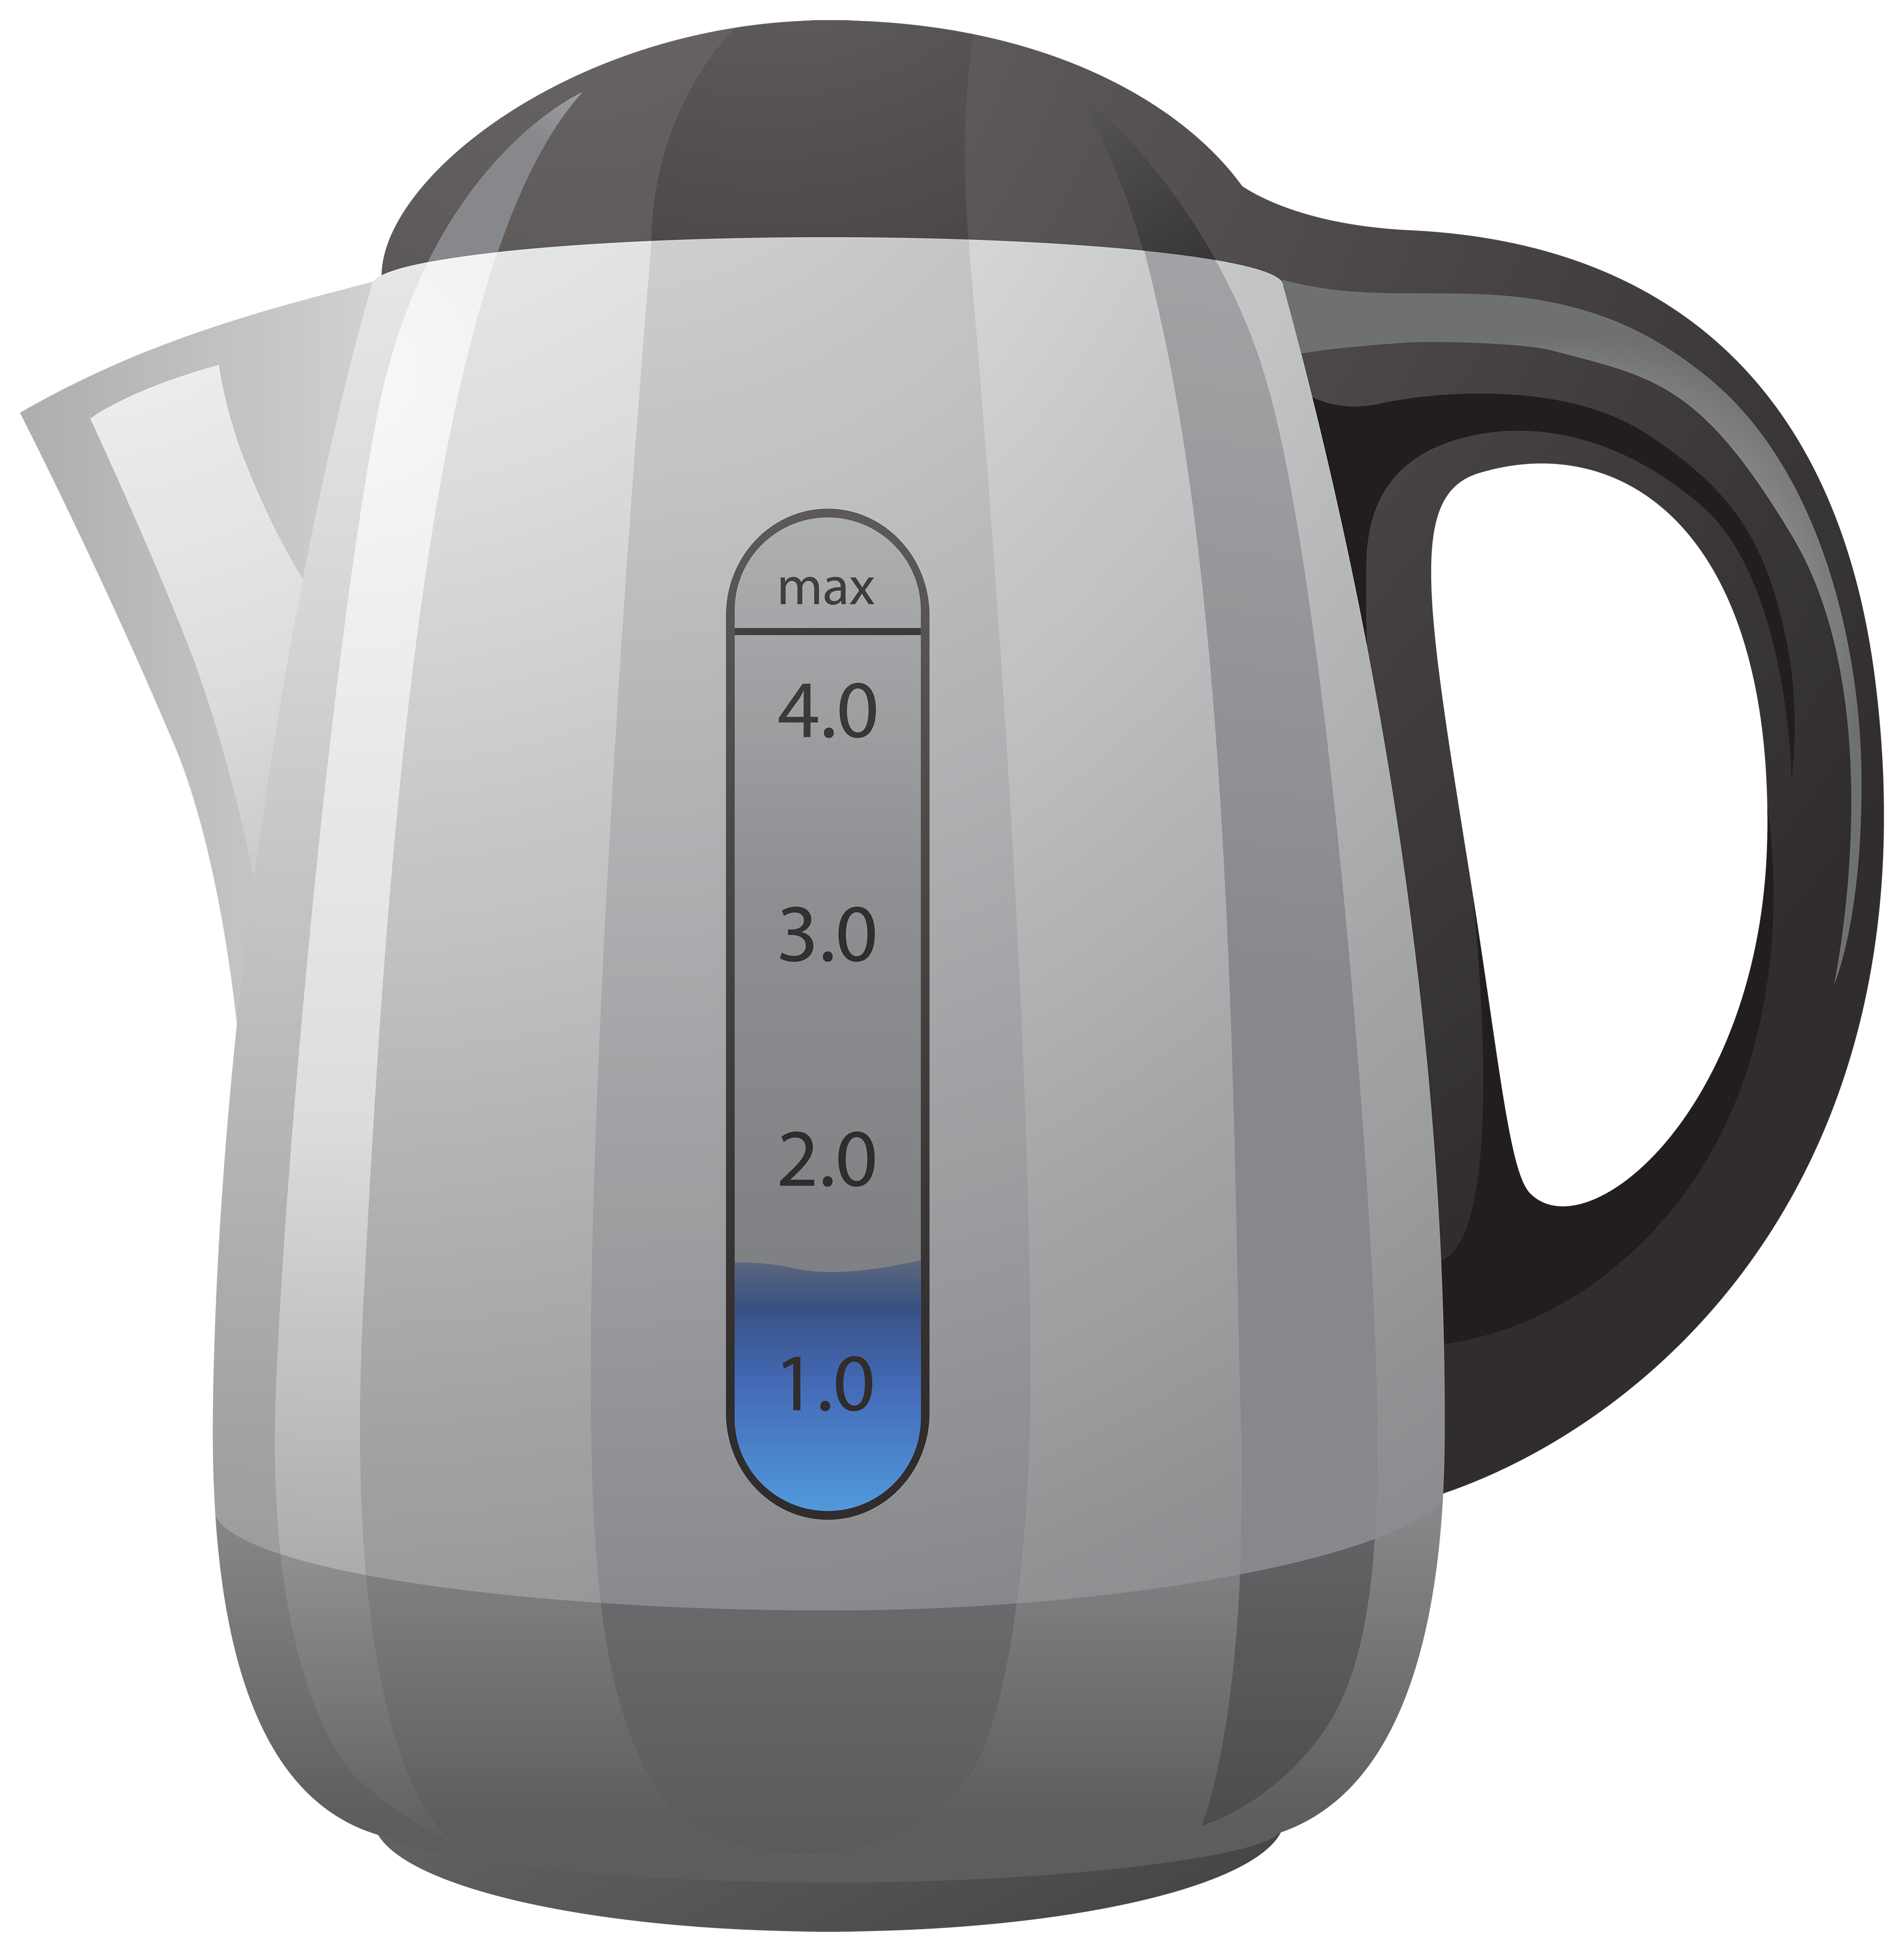 Electricity clipart uses electricity. Electric kettle png best